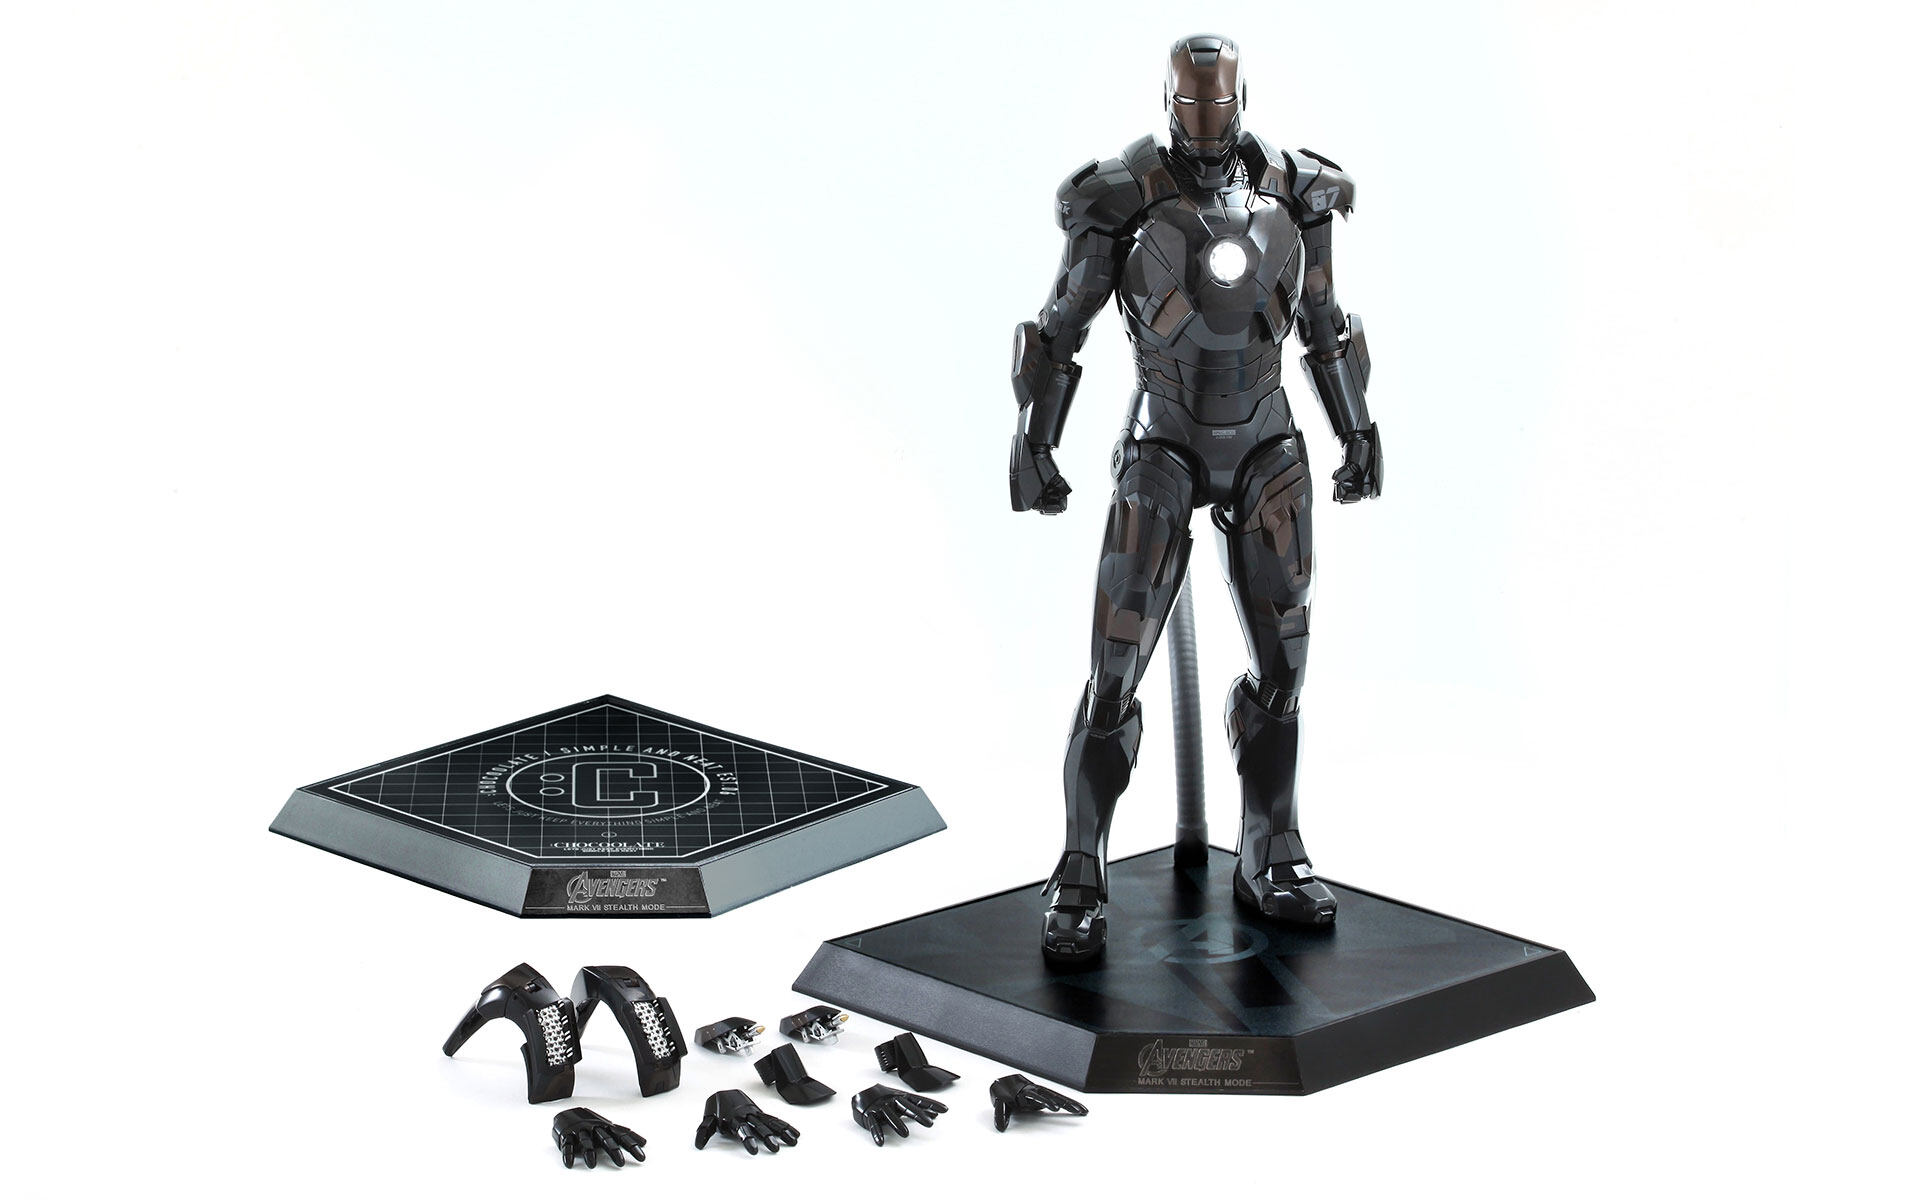 :CHOCOOLATE, Avengers: Age of Ultron, 復仇者聯盟2:奧創紀元, Iron Man